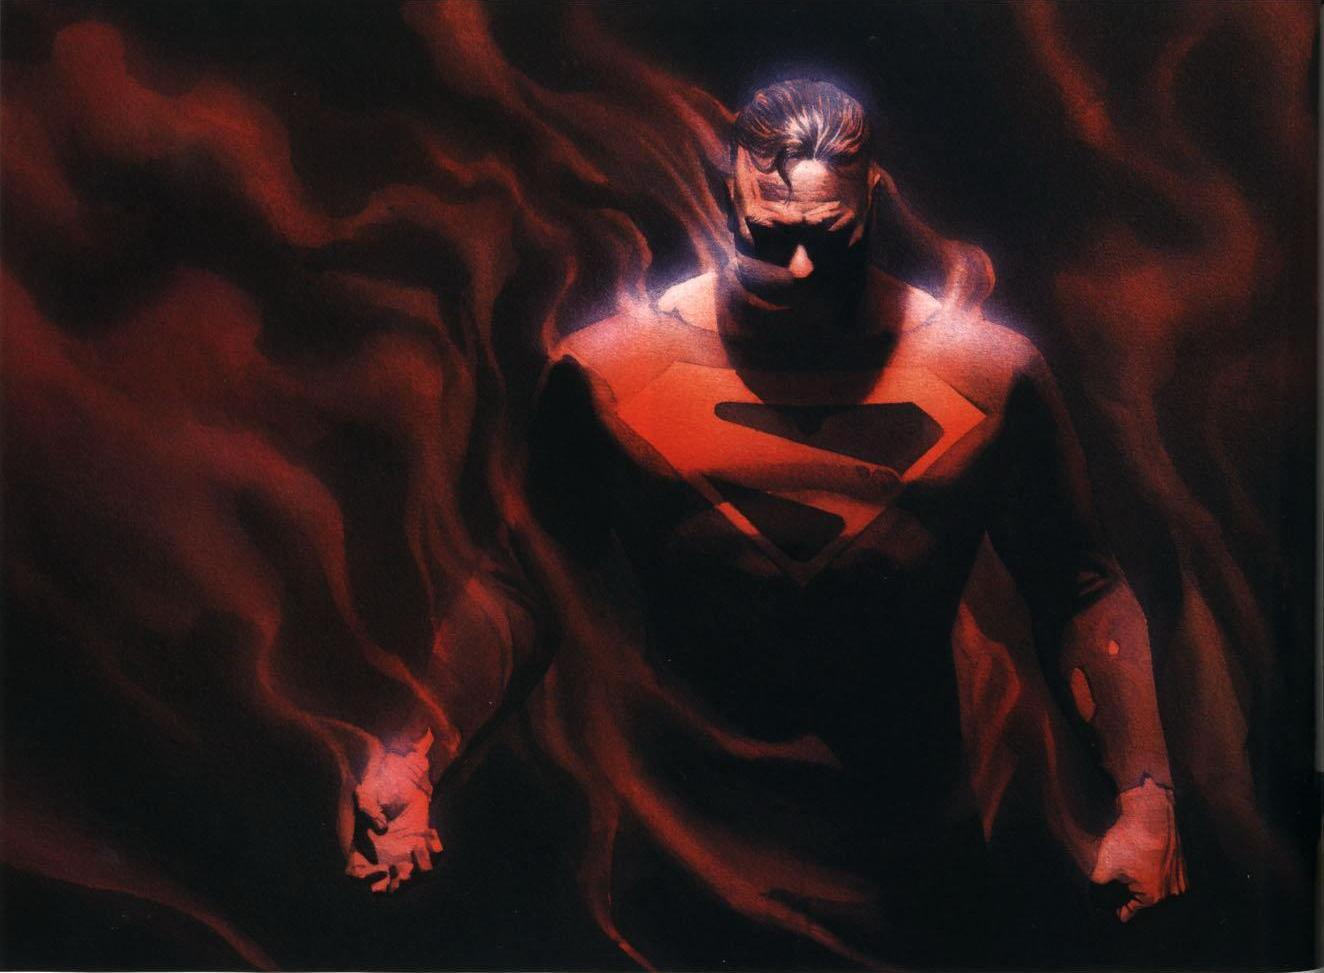 Superman Computer Wallpapers Desktop Backgrounds 1324x973